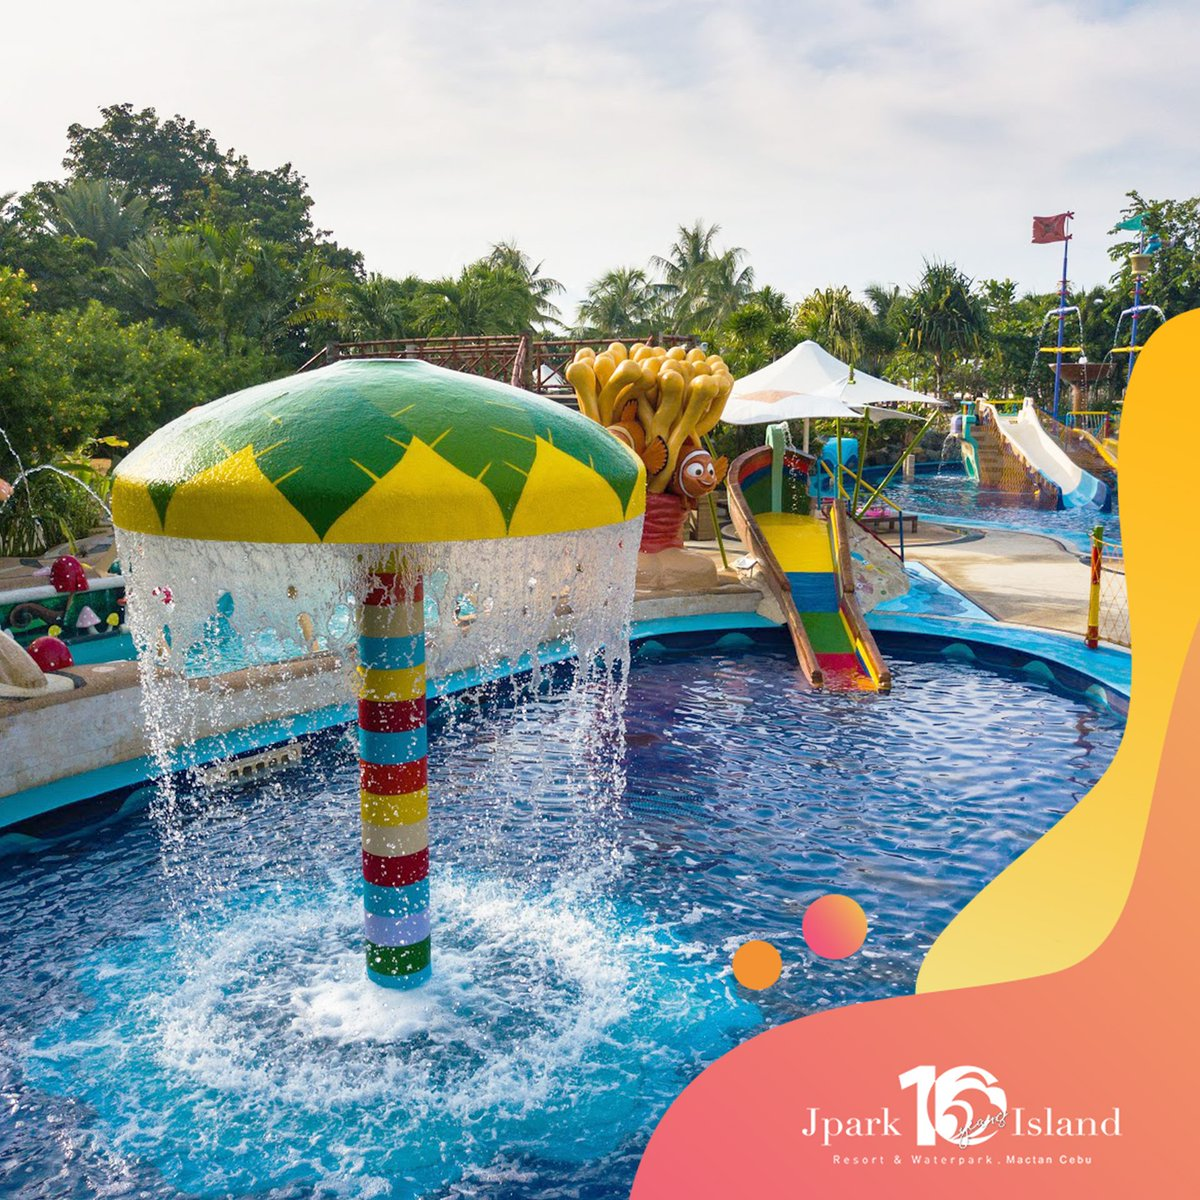 Ready to plunge and splash? Start the weekend right and take on exciting adventures with the whole family!   For reservations, visit: https://t.co/HjA4UQSTAq   #MyJparkStory #WaterYouWaitingFor  #TenYearsOfJpark https://t.co/DvaiWtDpQc